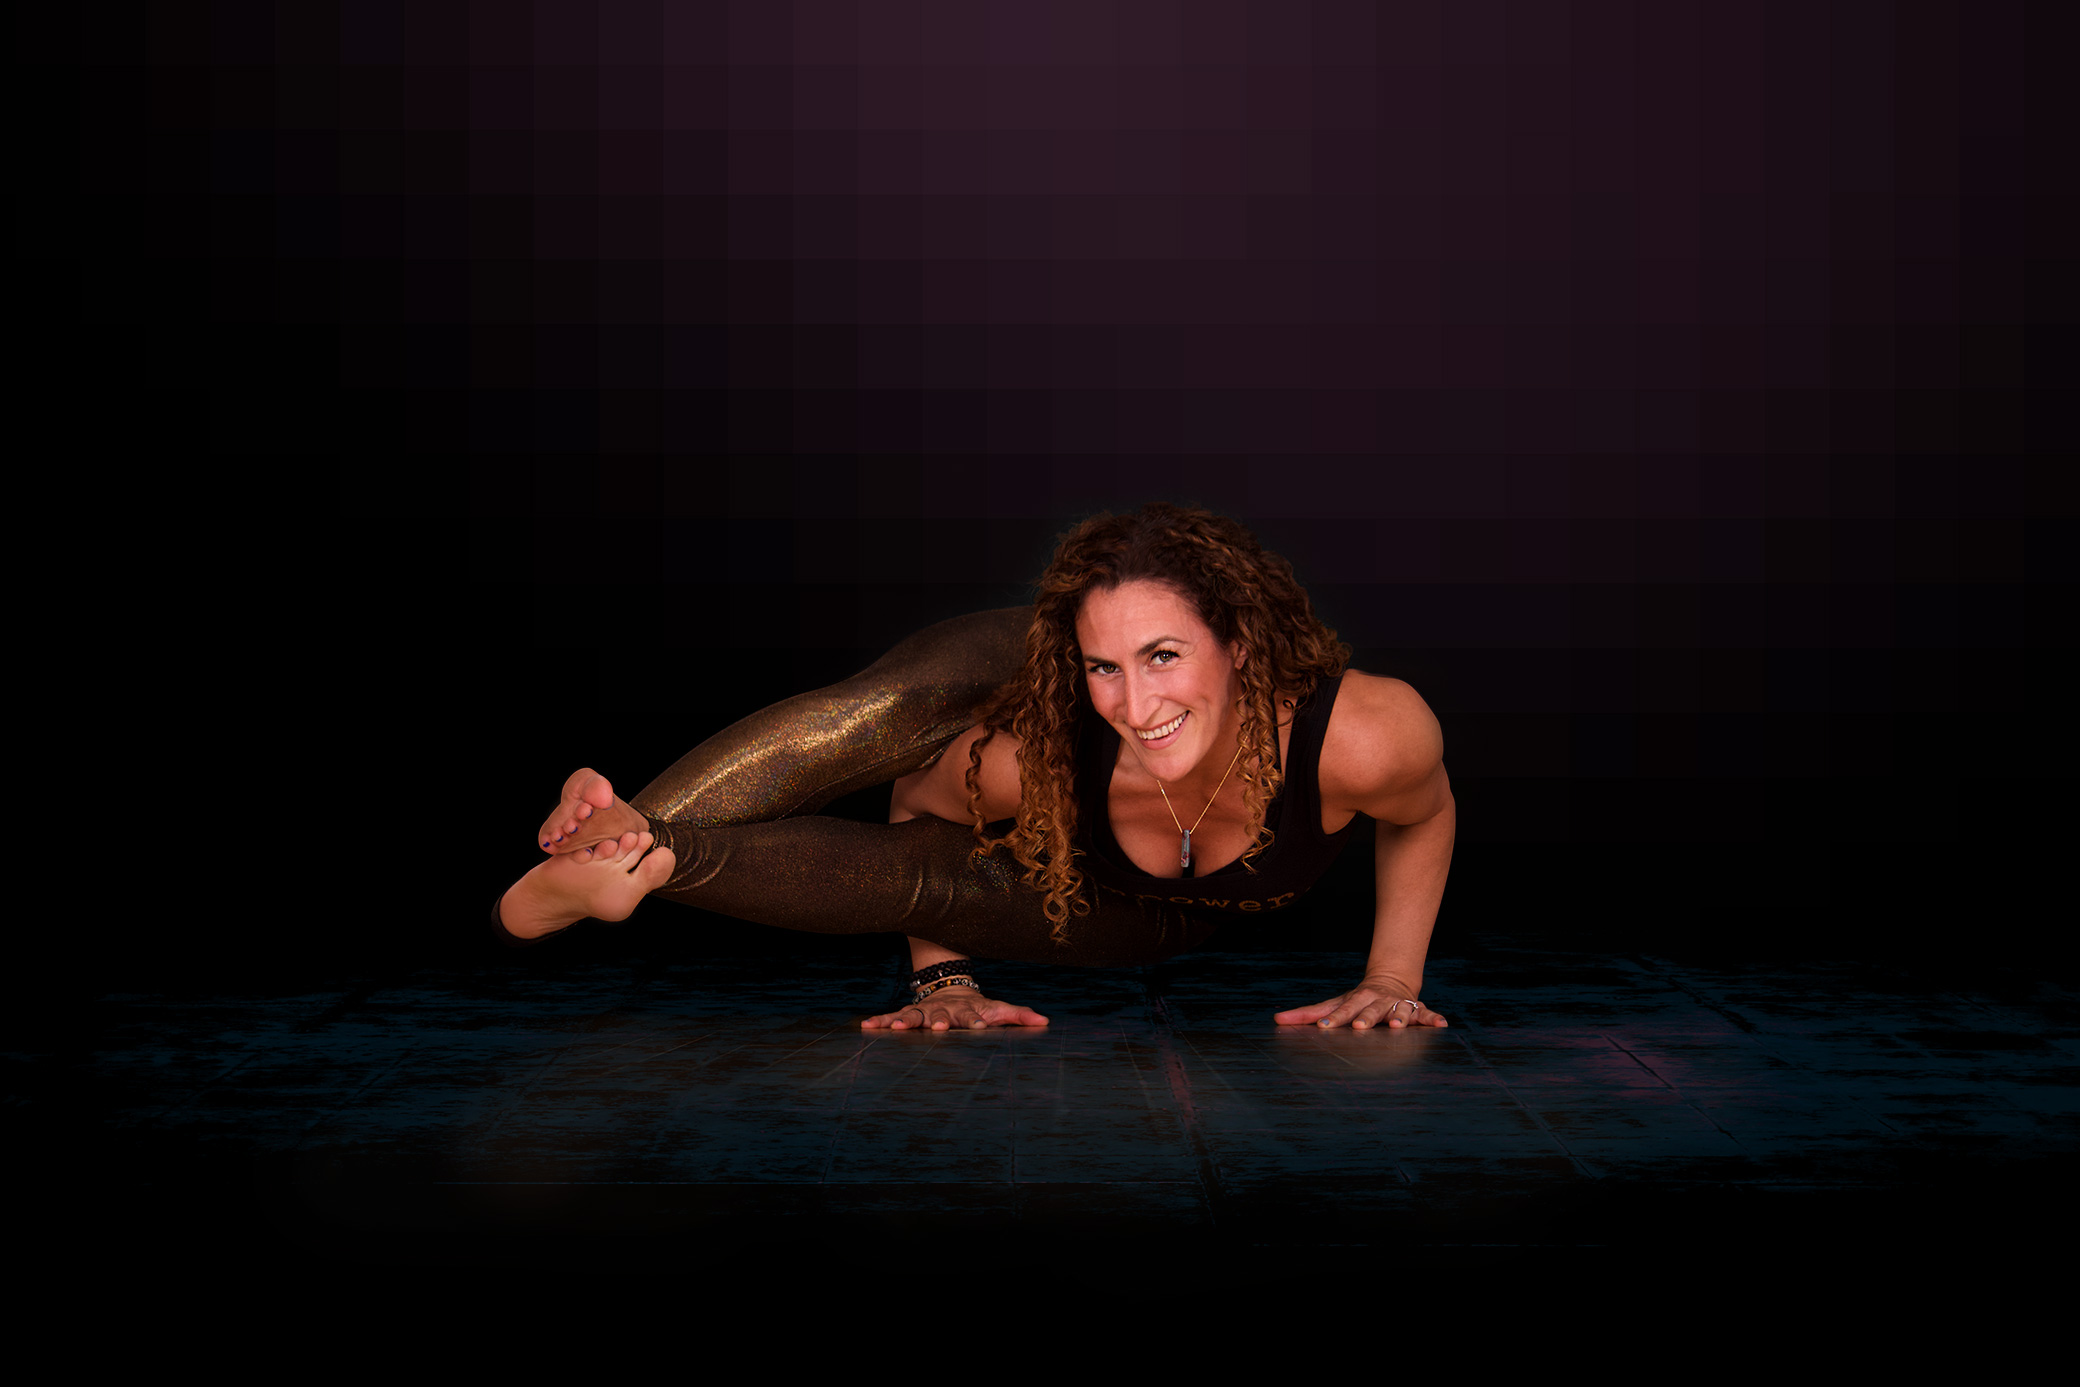 Michelle Briks - Mount Kisco, NYPhilosophy / inspiration / what can people expect in your class?Michelle designs yoga experiences that empower her students, through intention and mindful awareness, to connect deeply and grow safely into the next level of their practice. In her classes, Michelle creates an environment of extraordinary compassion and freedom where students are inspired to go beyond their perceived limitations. I am passionate about empowering others to increase their strength and grace and get inspired through the practice and teachings of yoga. She is moved by witnessing her students and teacher trainees' growth and transformation as they connect deeper with their inner light.Chief executive yogiOhra Yoga's founder and Director of both the 200 & 300 hour teacher trainings. Michelle is the Main teacher for the 200 hour program and teaches Modules and monthly 'check-ins' along with Ohra's stellar staff.Classes taught at Saw Mill Club:Hot Fluid Power, Align & Flow Thursday Blacklight Yoga, Gentle/Restore, Core & Restore, AIReal Yoga, 200 & 300 hour Yoga Teacher Trainings, Private Yoga.Experience /Certifications:Michelle is E-RYT500 hour certified & has 12+ years of experience teaching yoga. She has received extensive training and certifications in Vinyasa and Prana flow styles, Anatomy and Ayurvedic Yoga therapy. She teaches and leads Saw Mill Club's Ohra Yoga 200 & 300 RYS teacher training certification programs. Michelle is Yoga Director at Saw Mill Club.What did you do before yoga?Full time mom, Adjunct lecturer at Queens College, Registered Dietitian.Certifications: E-RYT 500